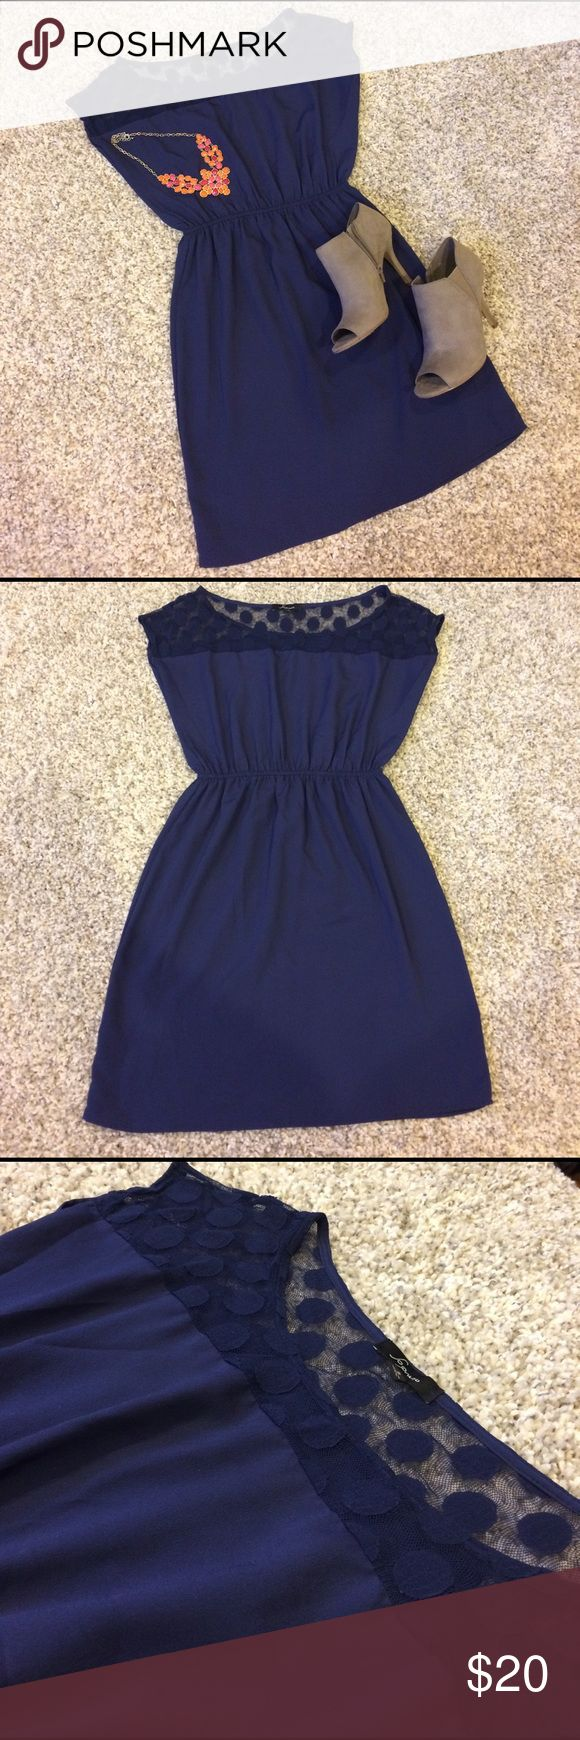 ☀️Navy summer dress☀️ Fun and flirty navy blue summer dress from Nordstrom. Has sheer polka dot detailing on the shoulder area. Synched elastic waist so is very flattering and forgiving. Extremely comfortable and very light weight. The perfect summer dress!! Nordstrom Dresses Mini